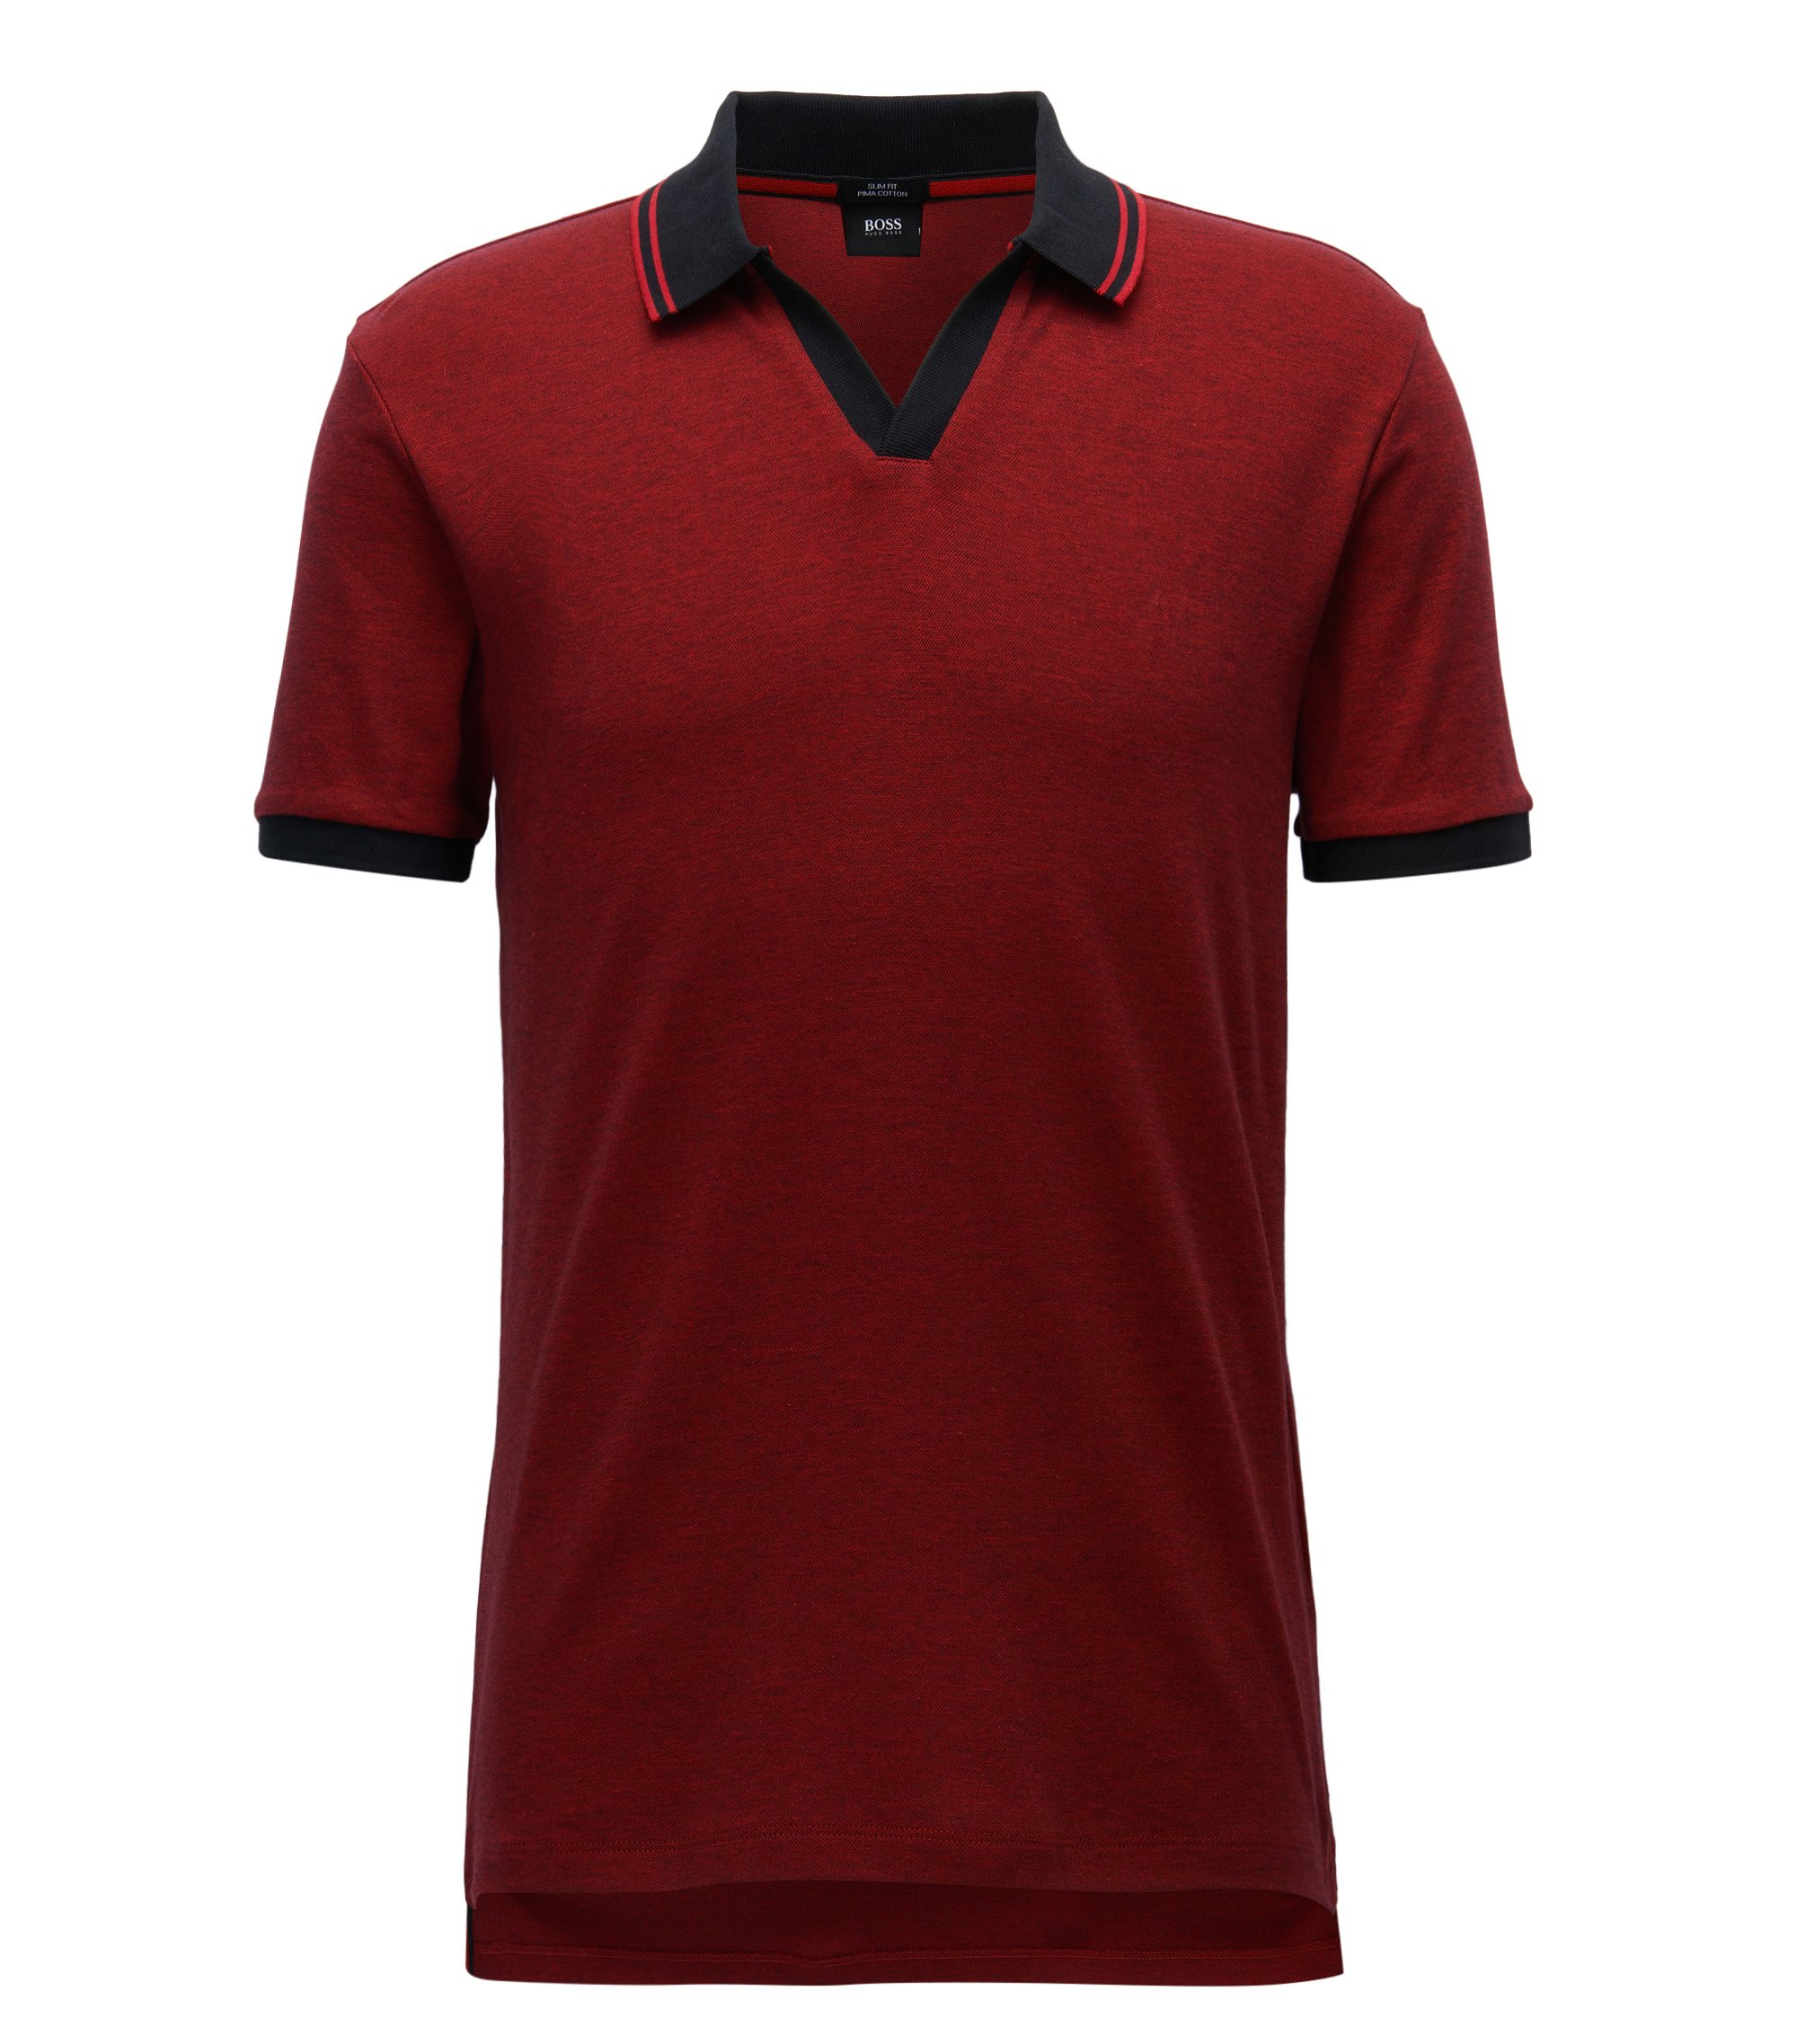 Pique Cotton Polo Shirt, Slim Fit | Phillipson, Red